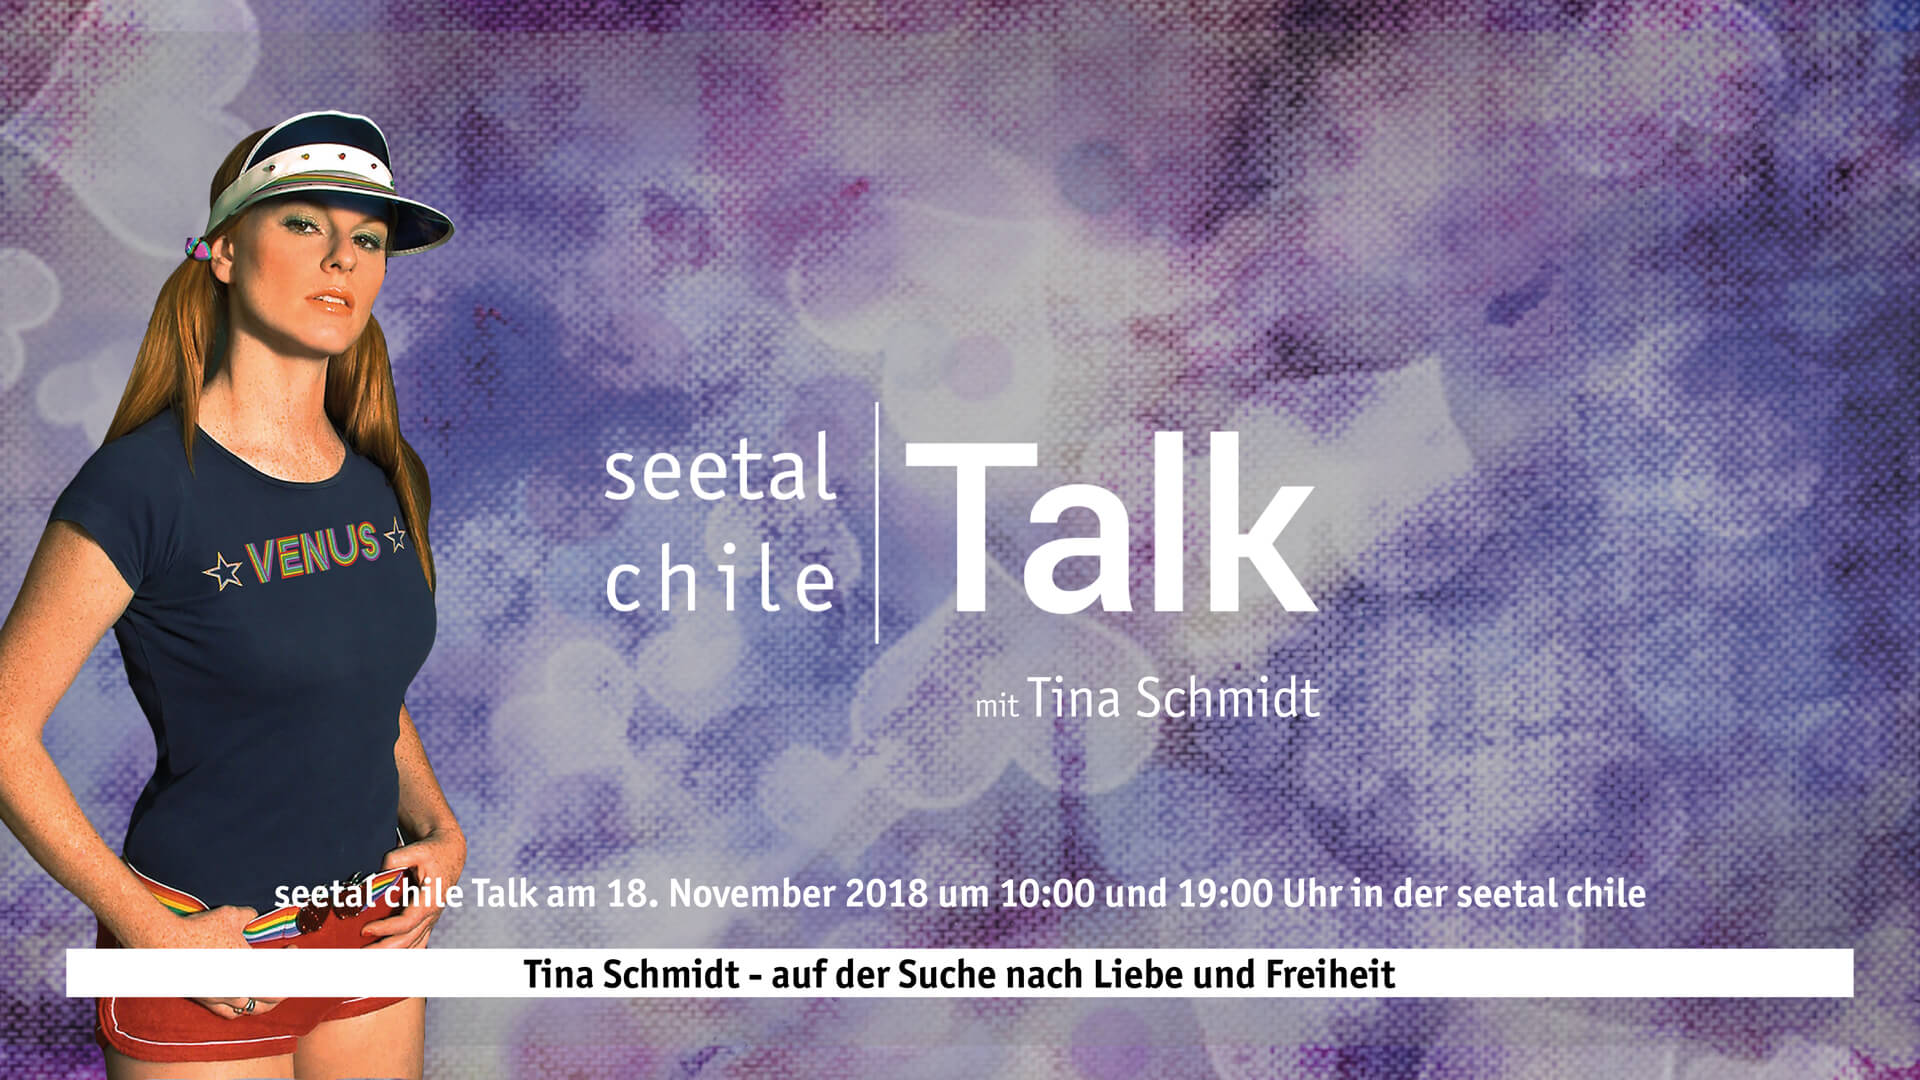 https://sermons.seetal-chile.ch/wp-content/uploads/sermons/2018/11/seetal-chile-Talk_Tina-Schmidt.jpg